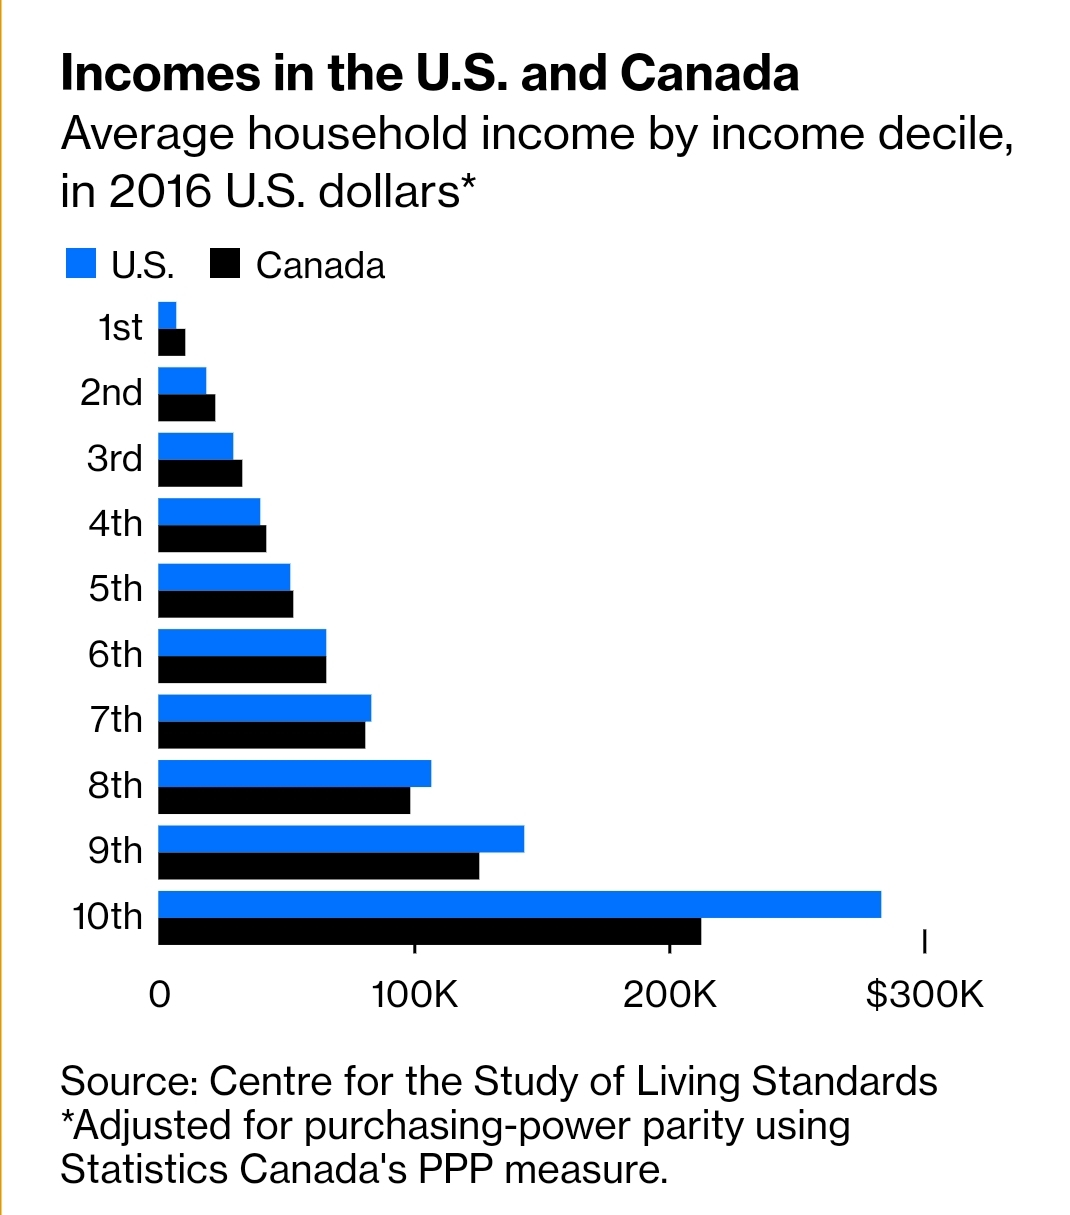 If you are not in FANG+, does it make sense to move to Canada for visa stability?